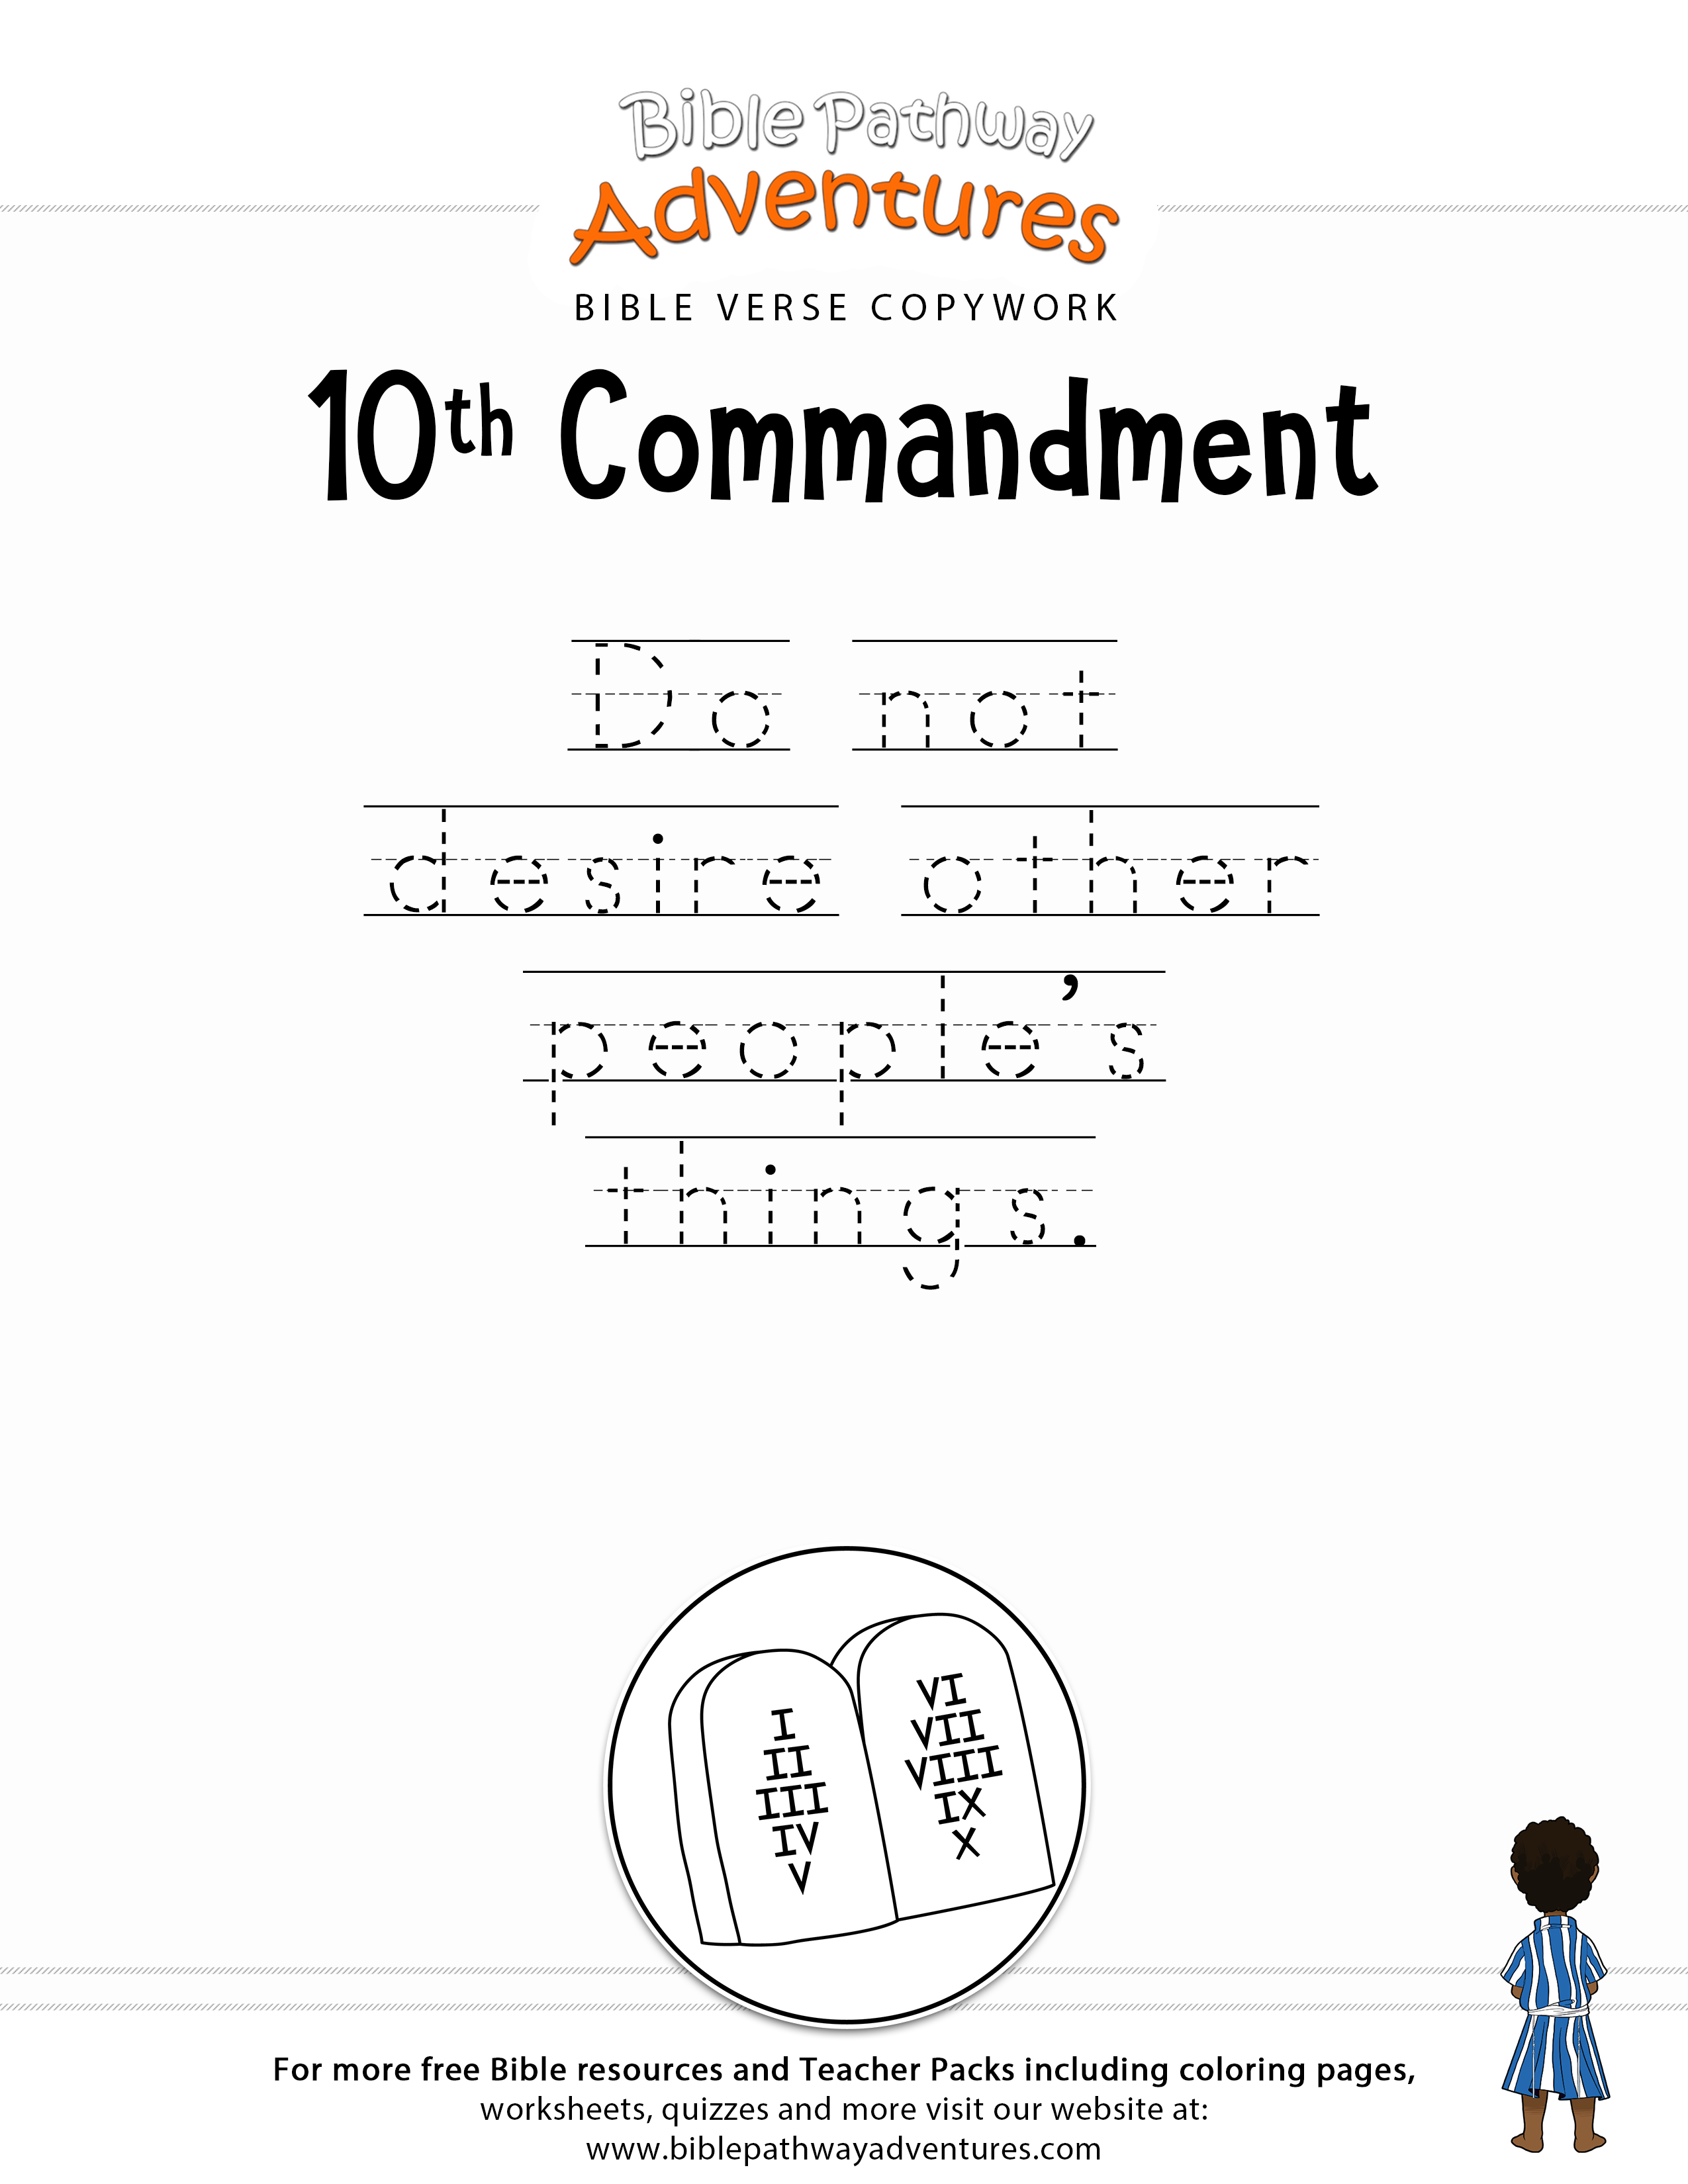 10th Commandment Copywork